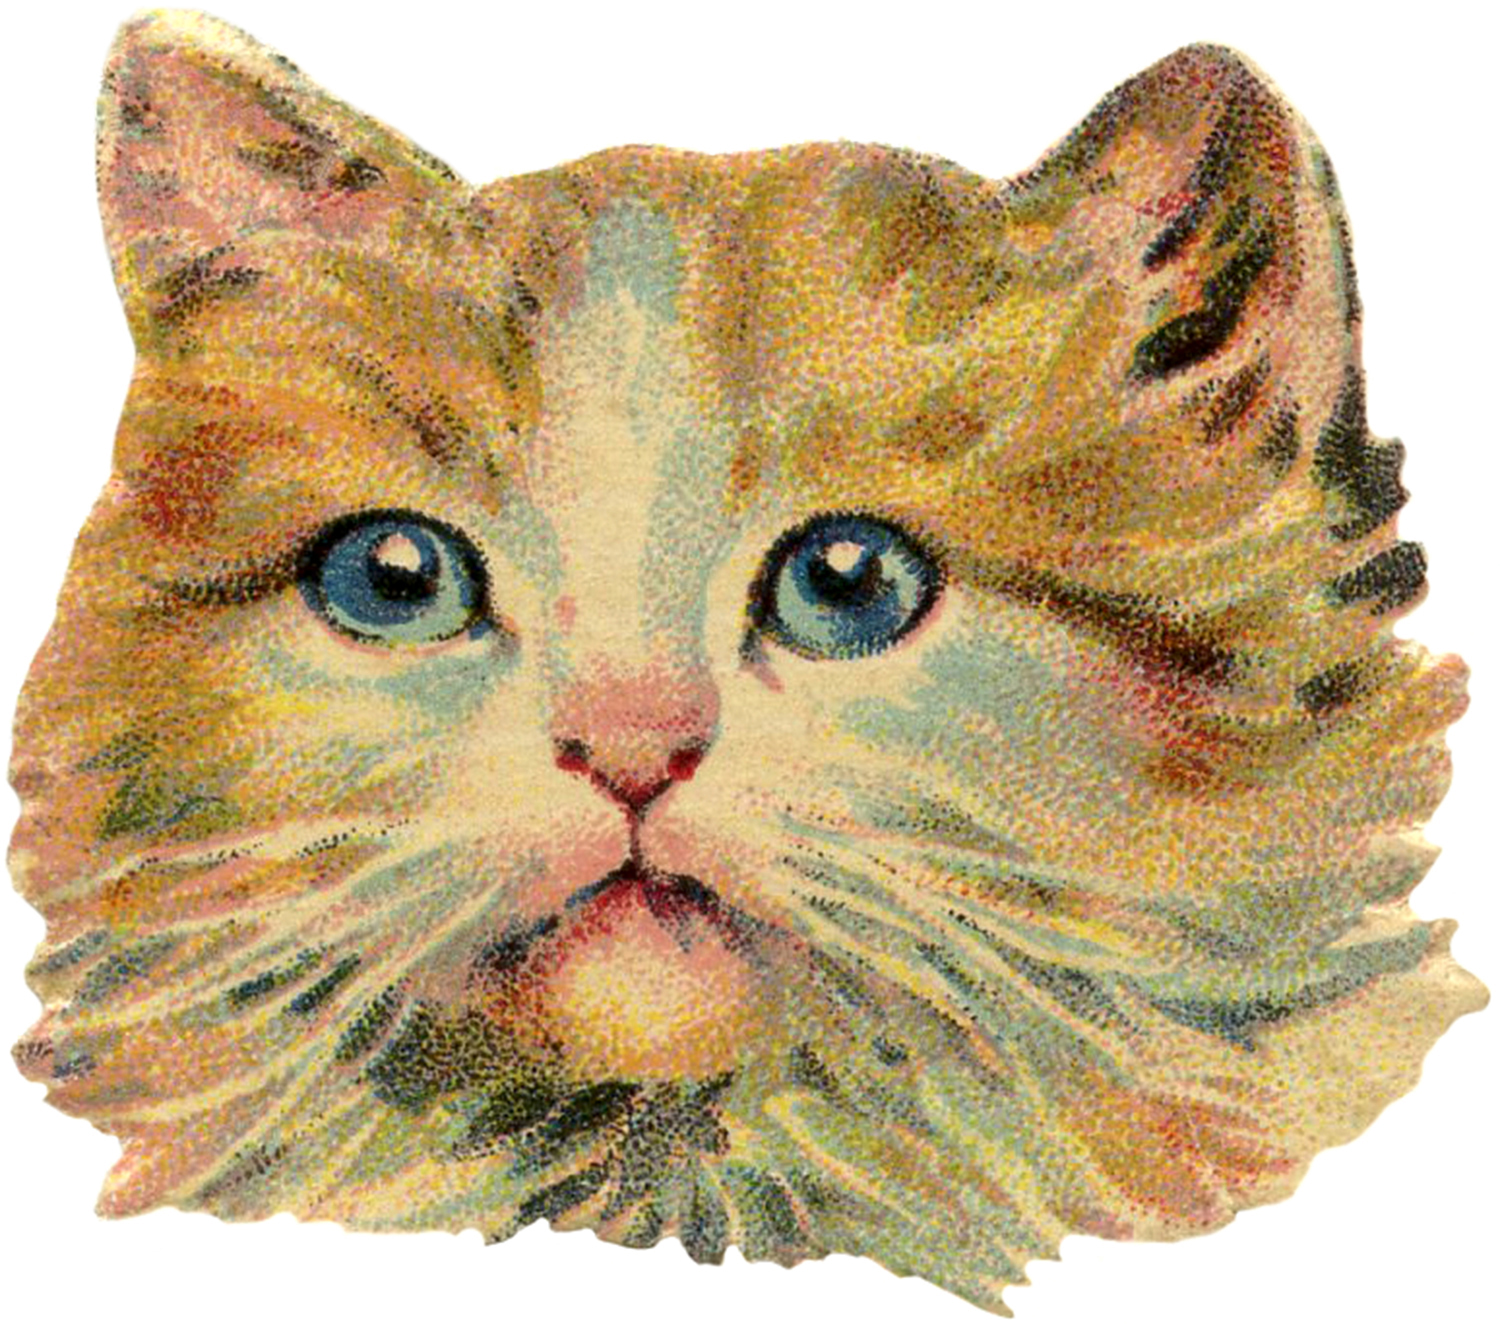 Vintage Cat Image Free The Graphics Fairy